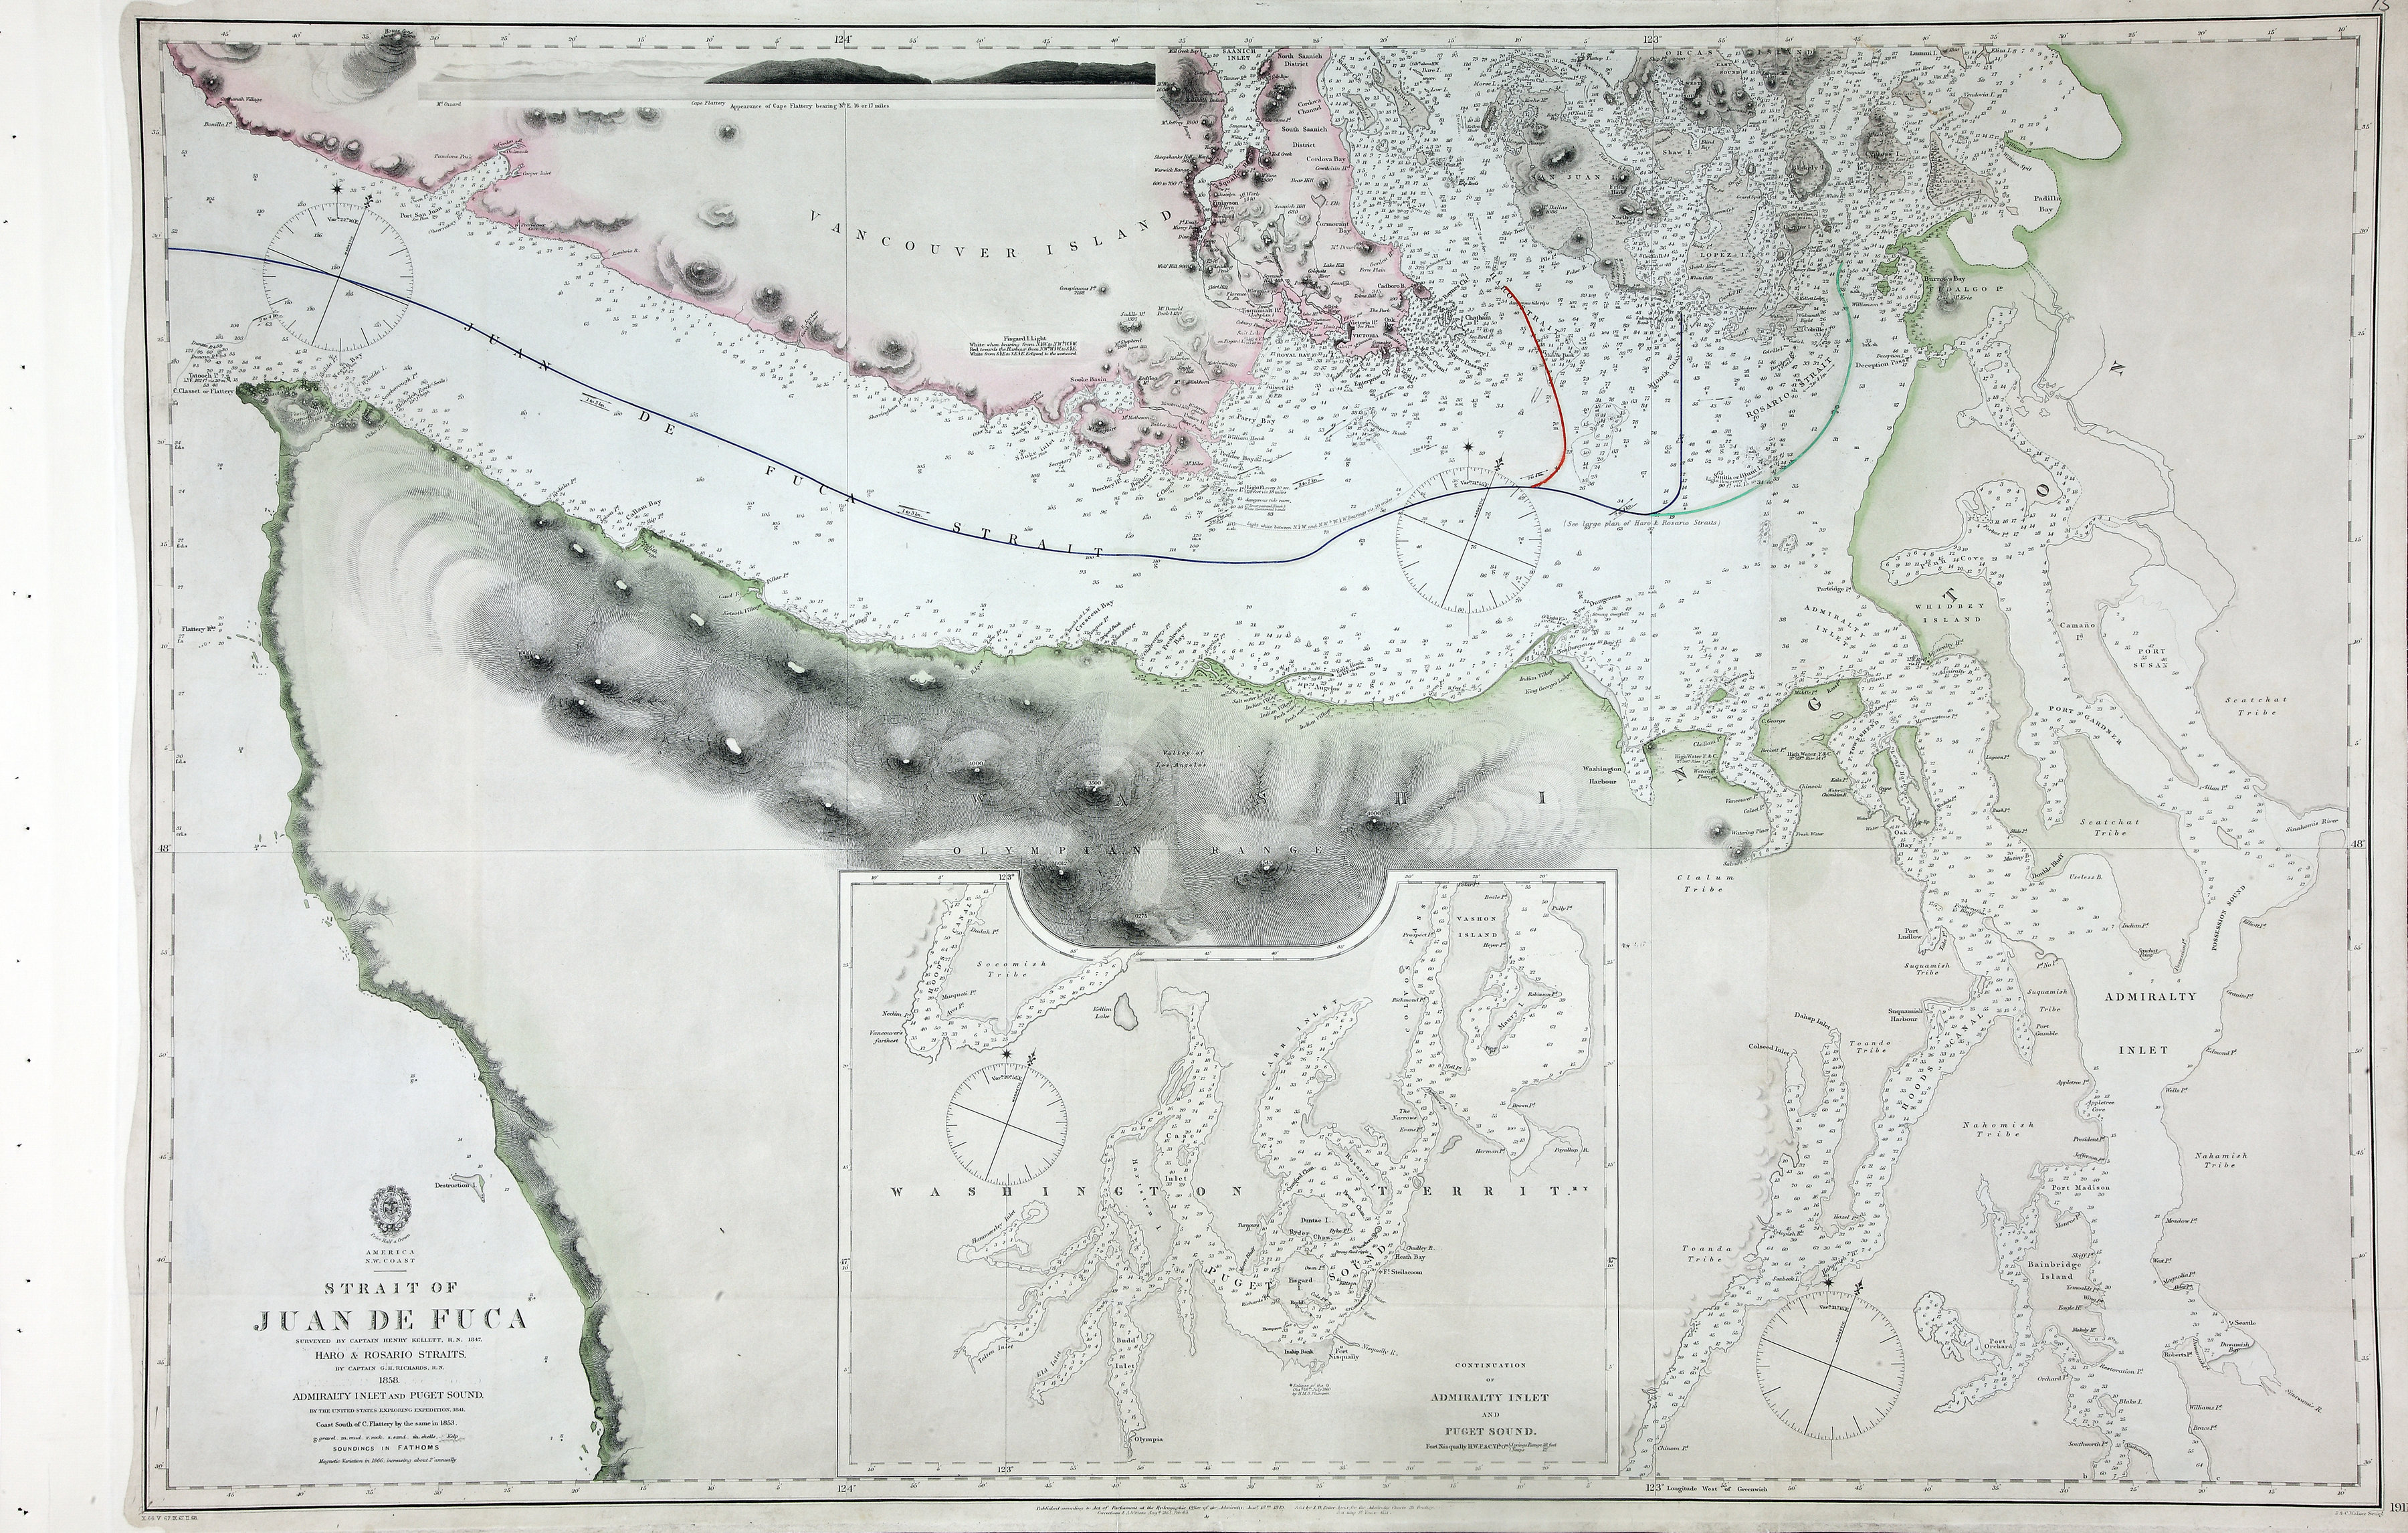 San Juan Water Boundary (Arbitration) : list of maps sent to Admiral Prevost at Berlin on the 12th June 1872 [map 39]